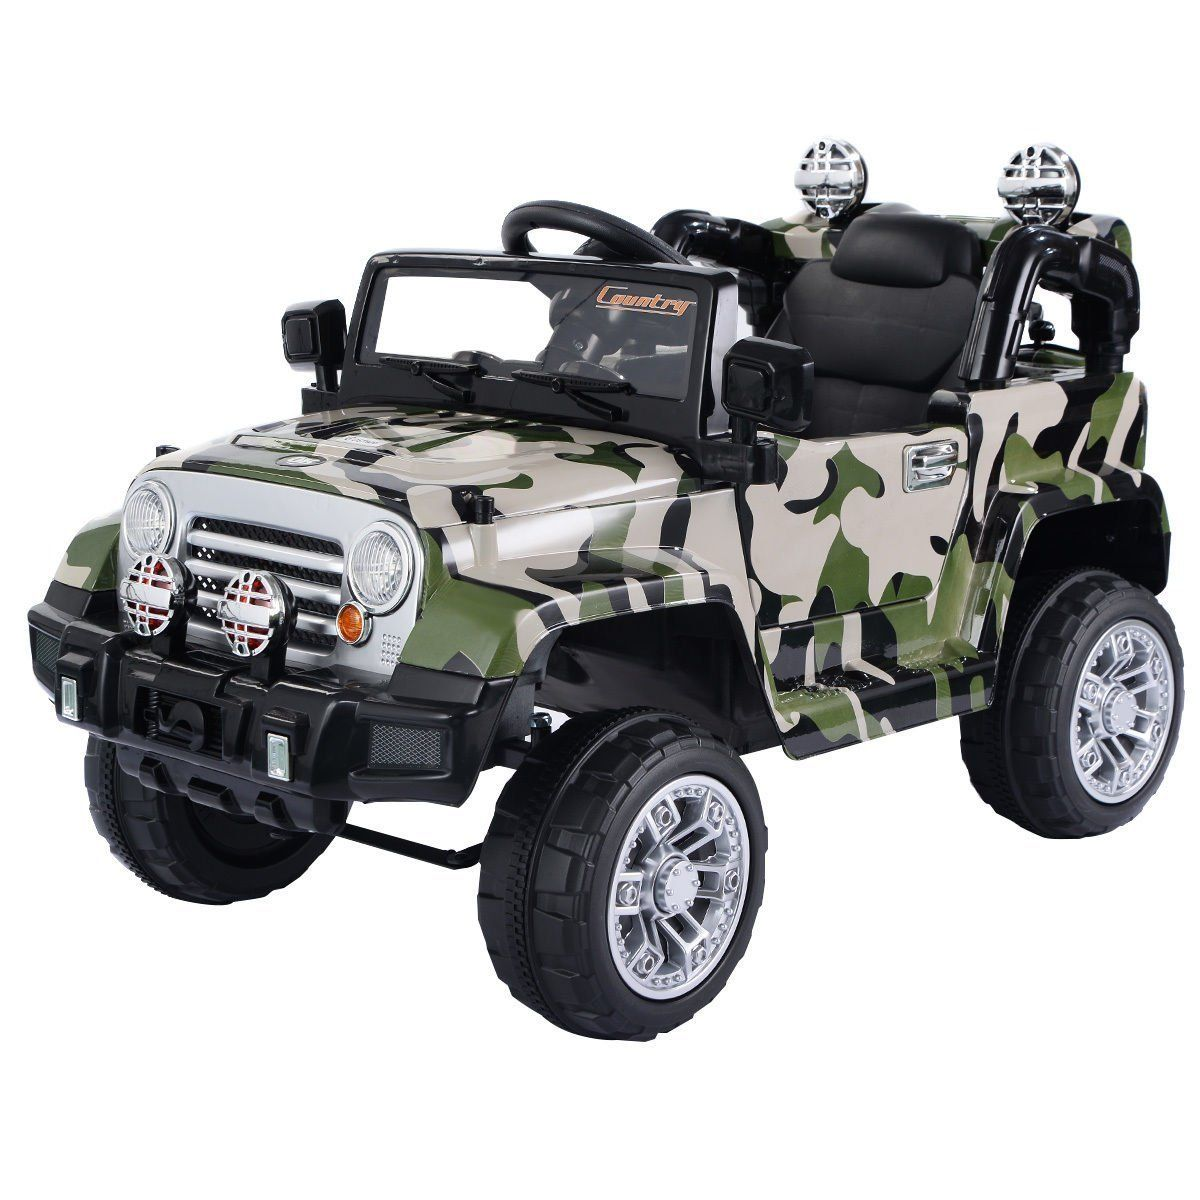 Jeep toys for kids   V Kids Camo Ride on Truck with MP  LED LightsTY